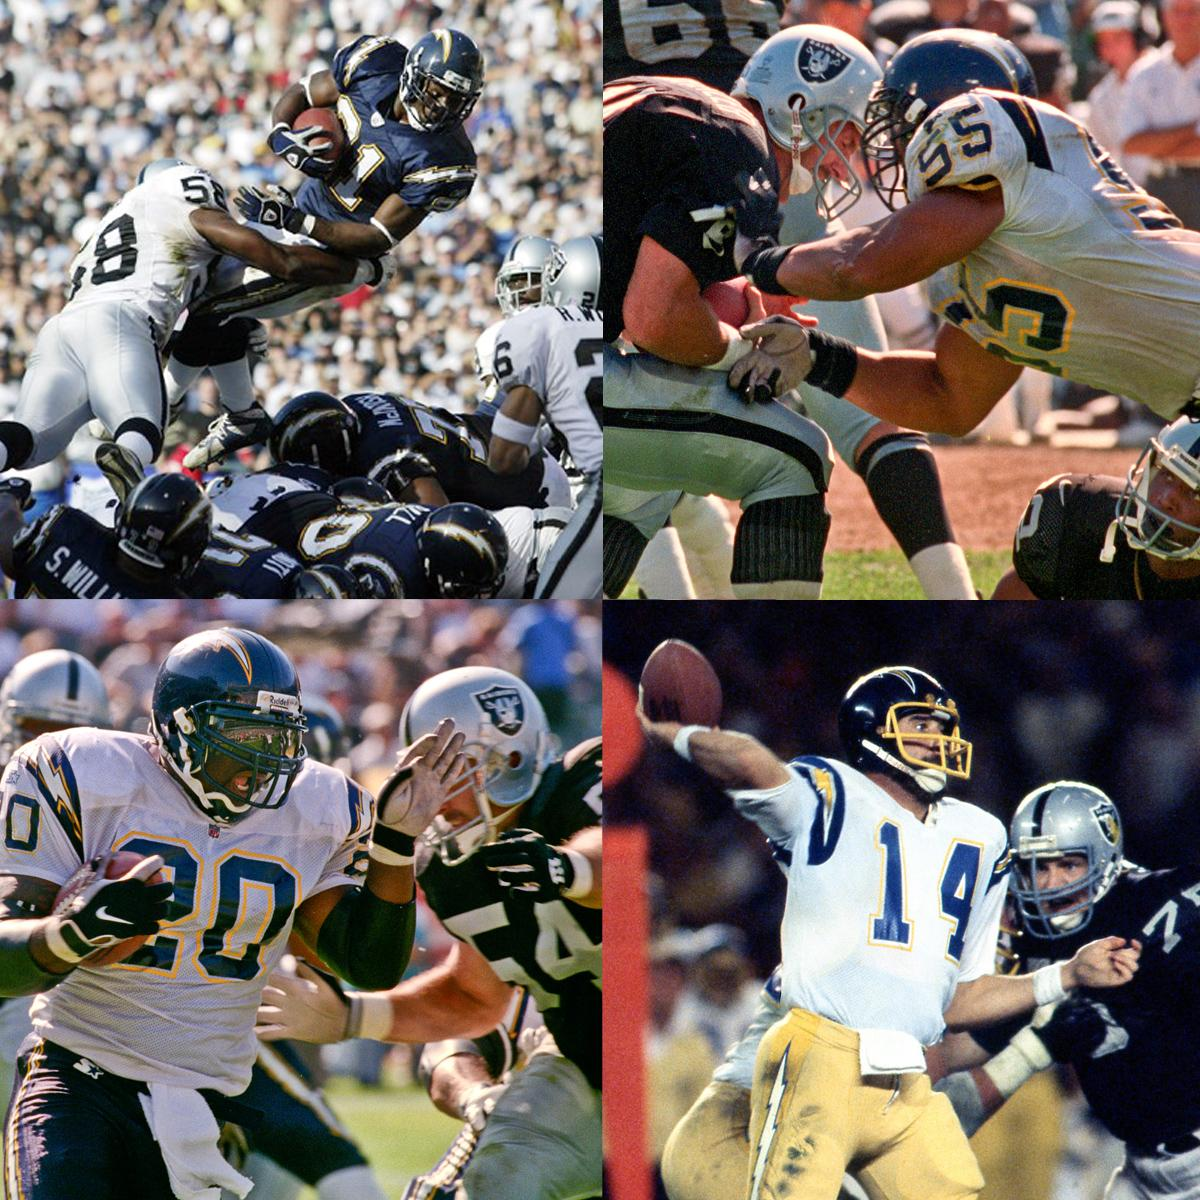 San Diego Chargers Images: San Diego Chargers (@Chargers)